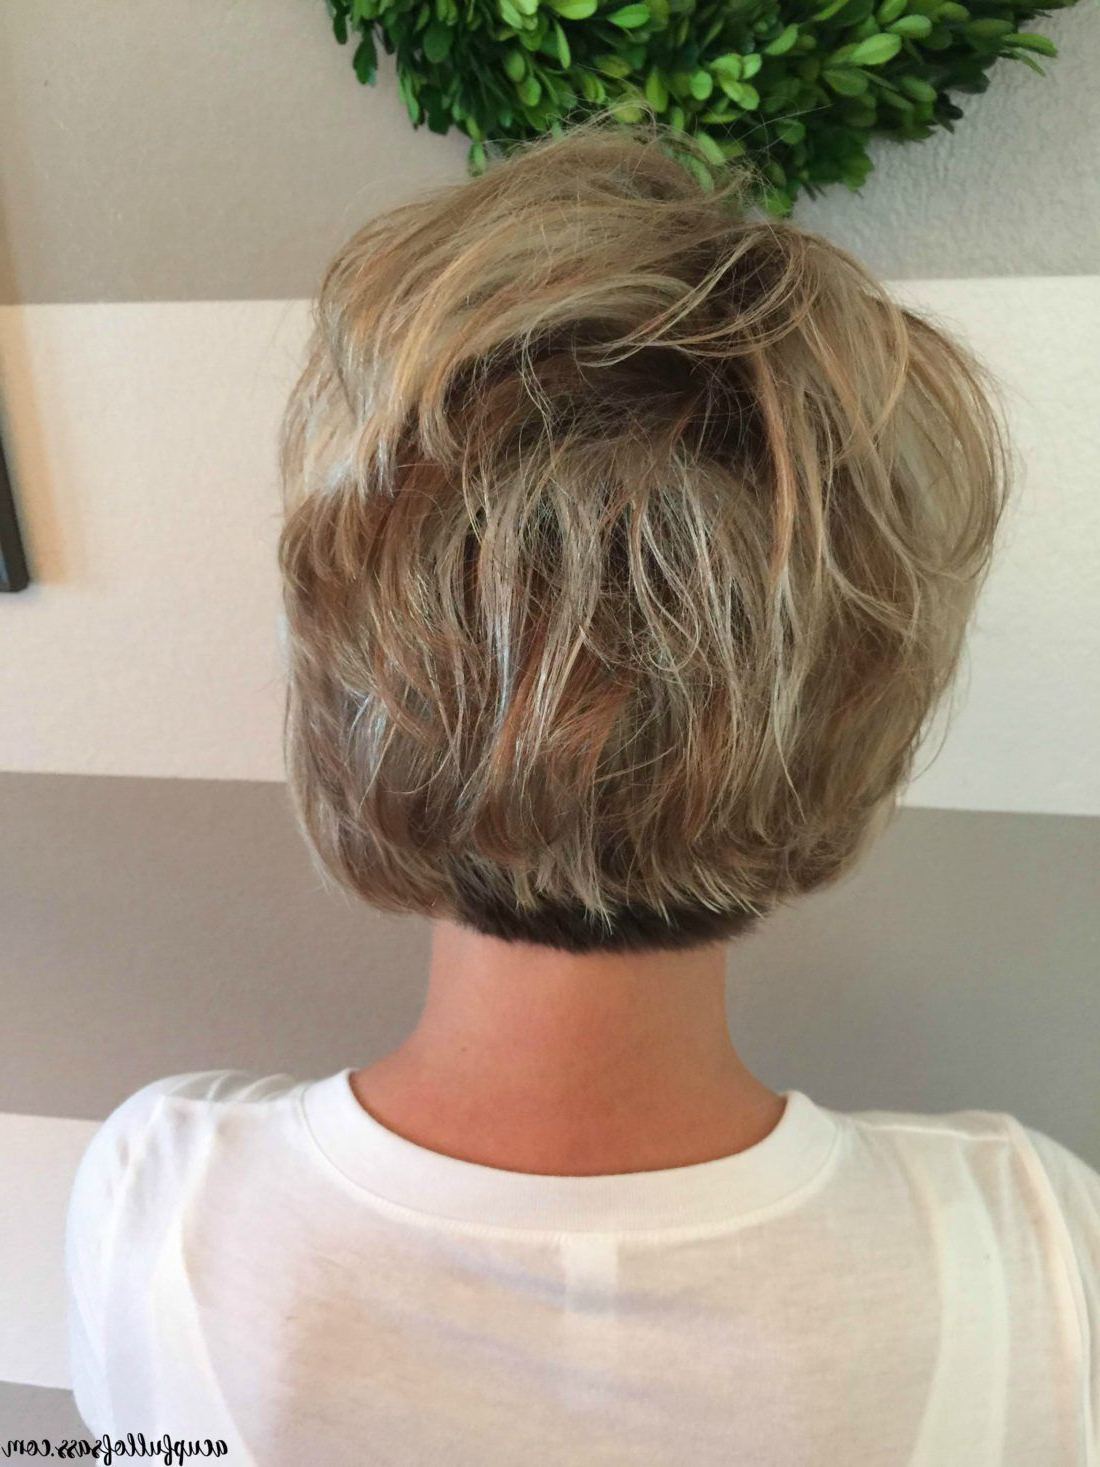 Easy Short Hairstyle With Fall Colors | Bobs | Short Hair With Short Shag Haircuts With Sass (Gallery 7 of 20)